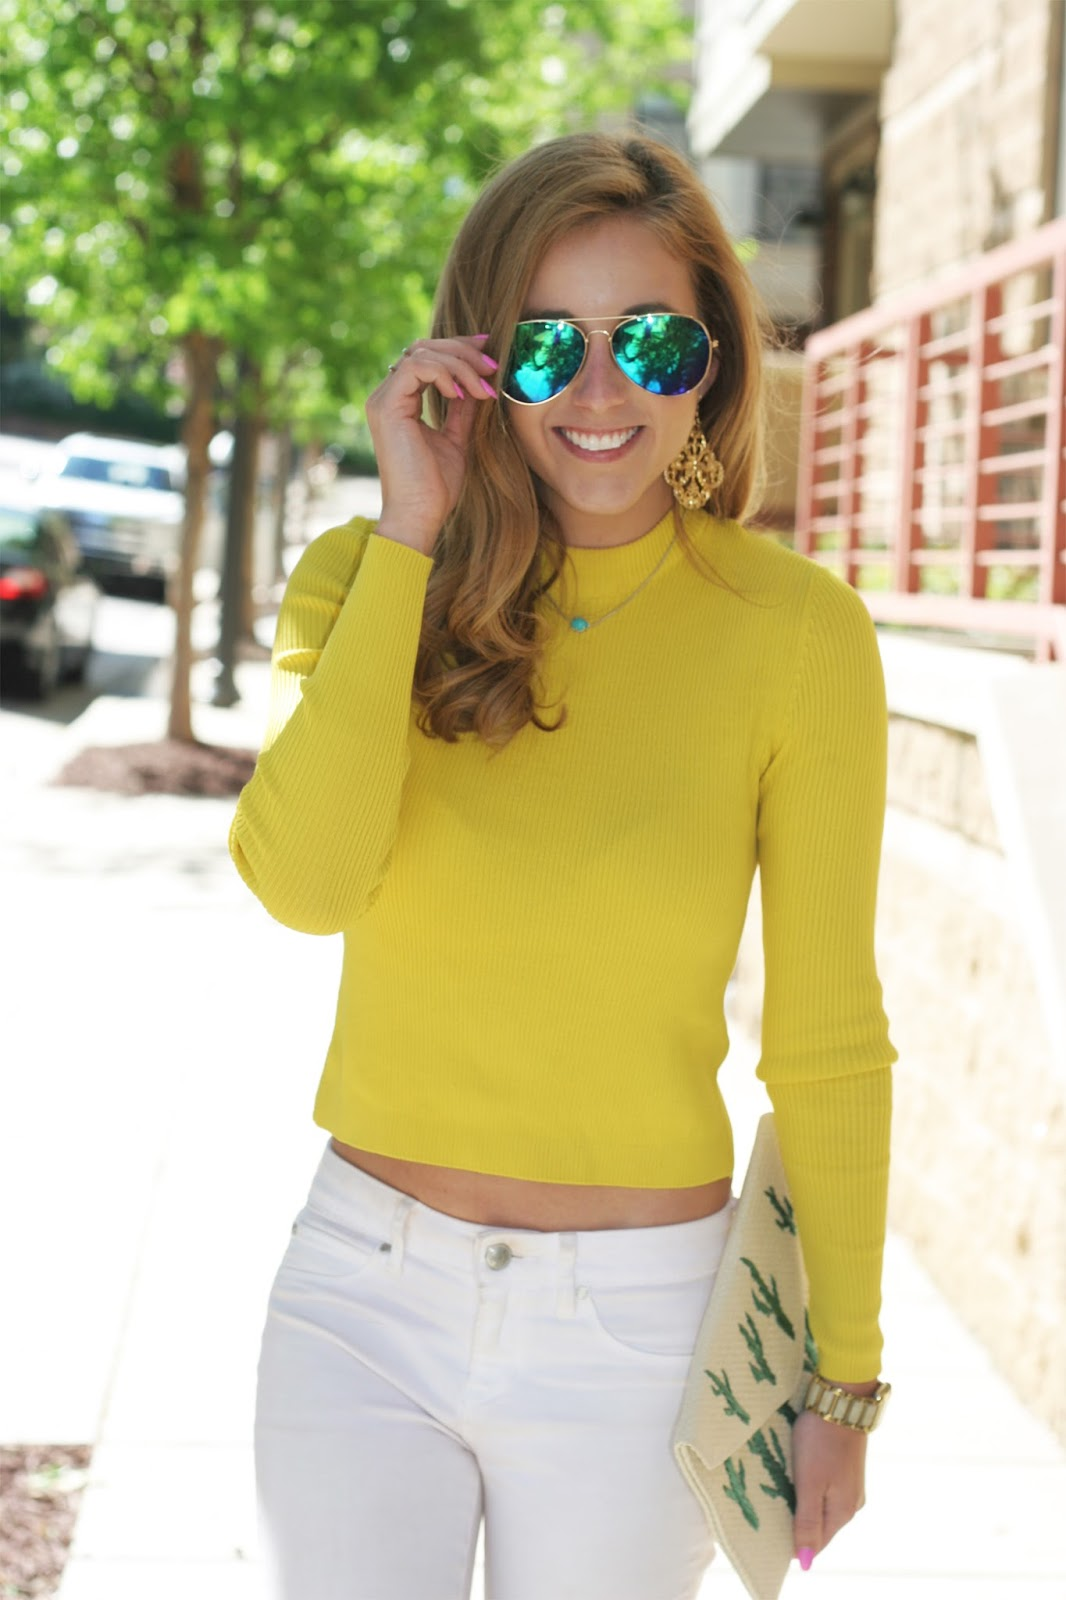 Fashion-blogger-headshot-mirrored-sunglasses-crop-top-and-cacti-clutch